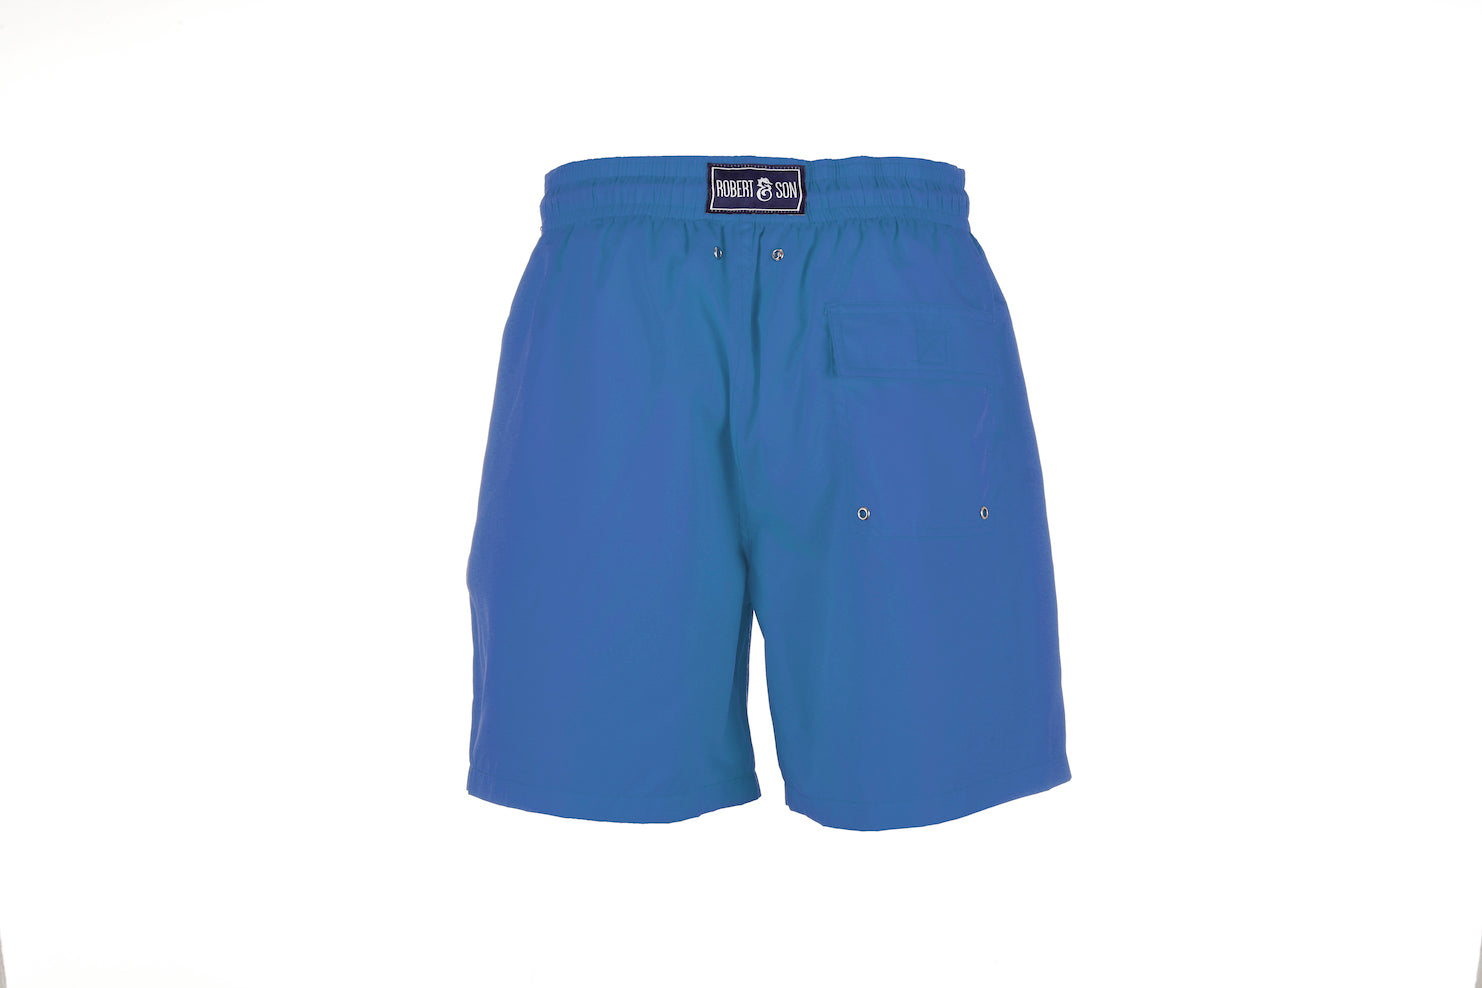 Blue Plain - Men's Designer Swim Shorts - Back